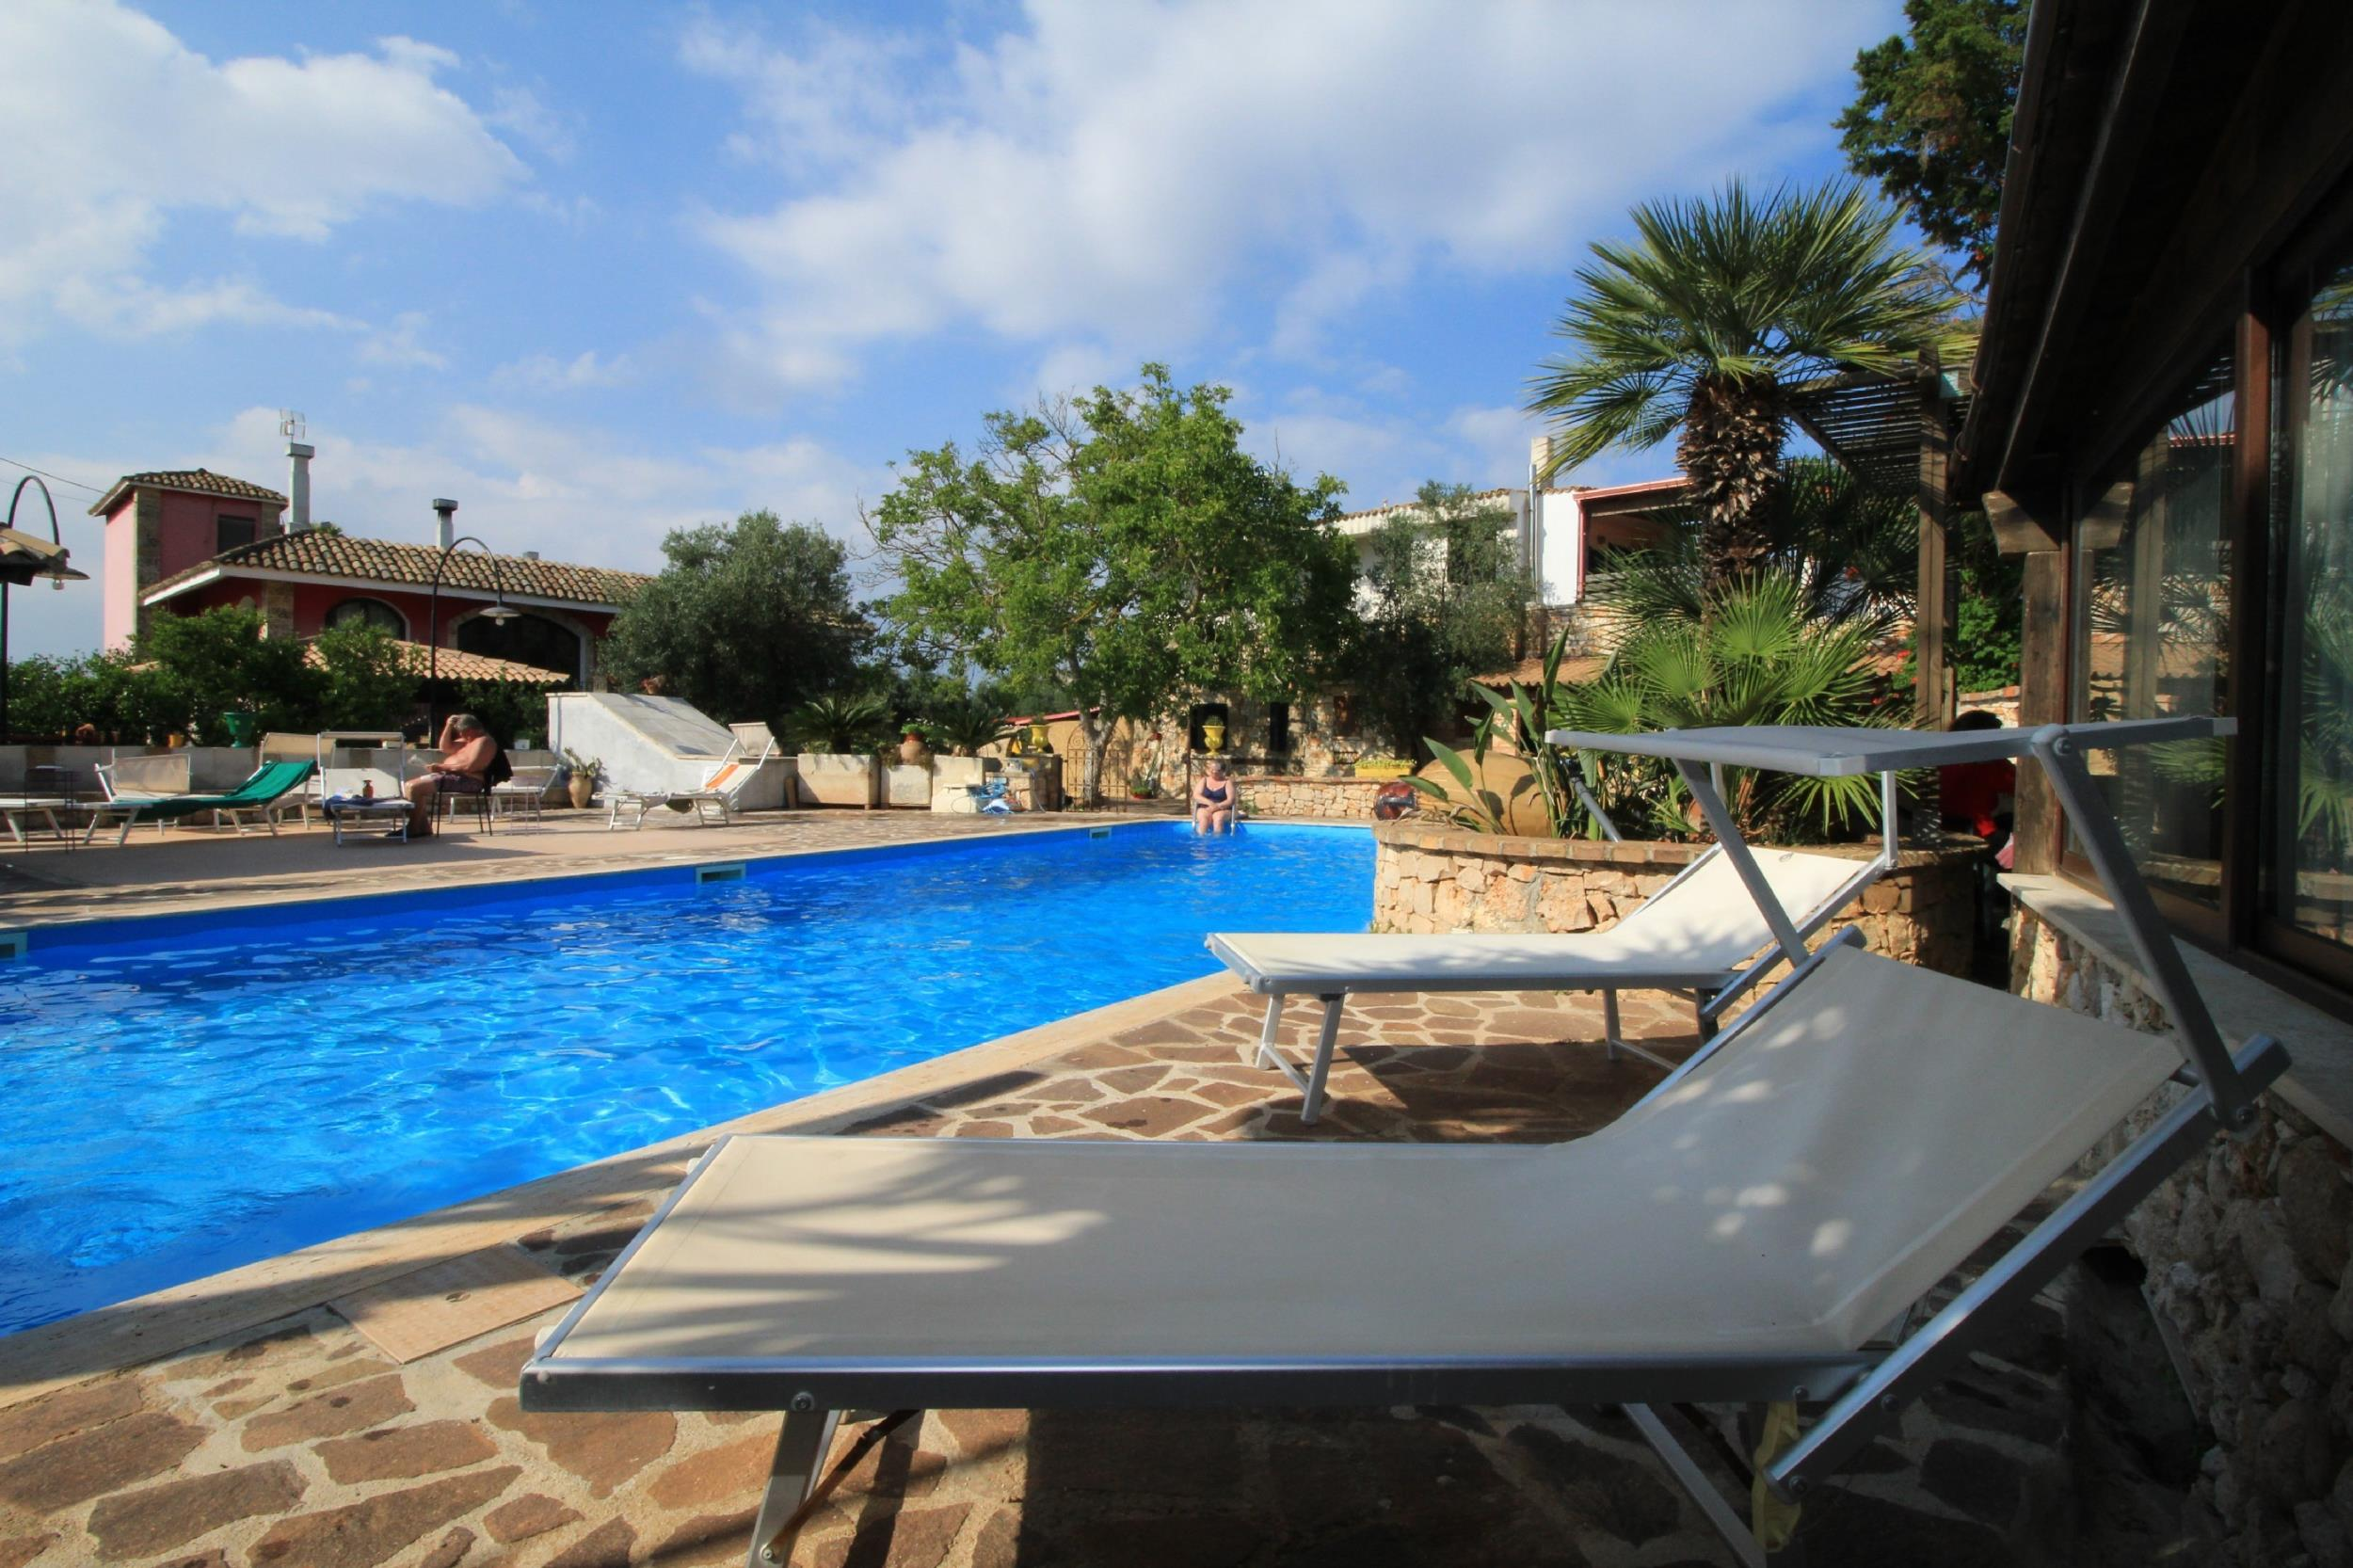 Apartment Trilo Noce shared pool photo 25188300